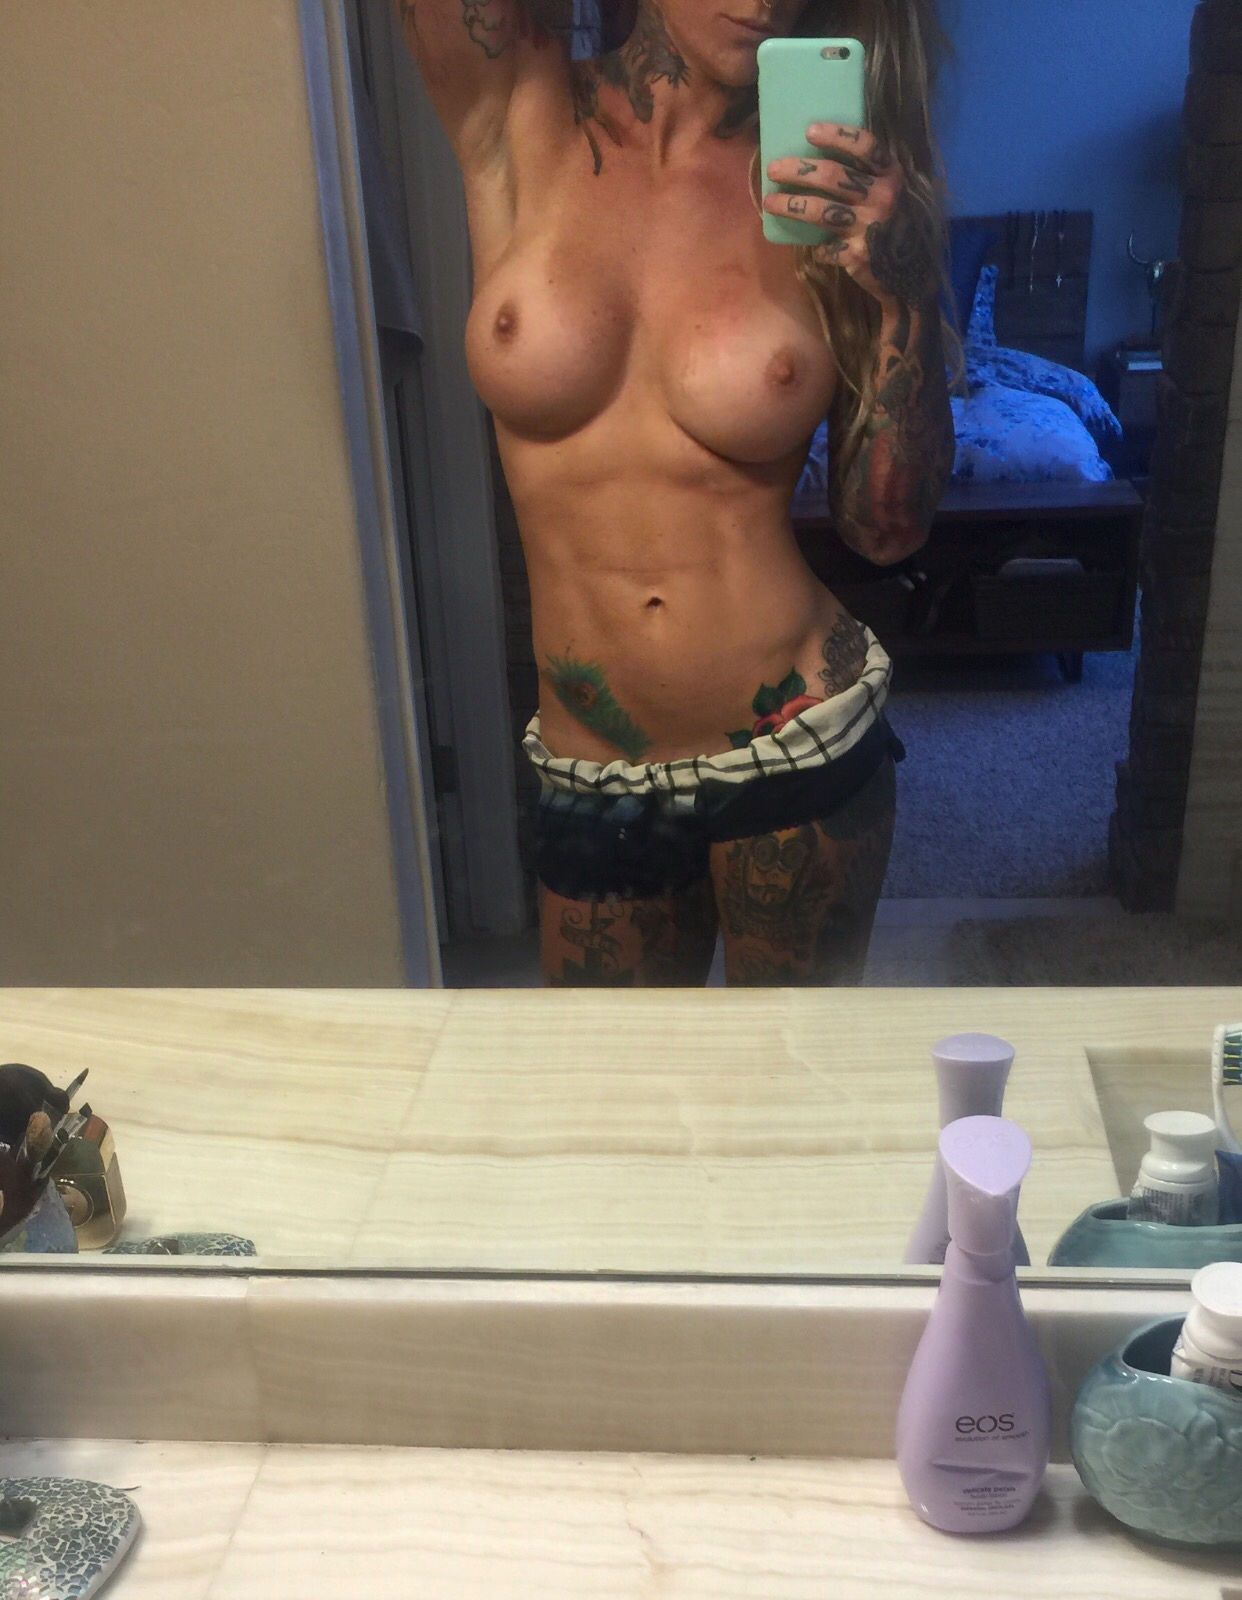 TheFappening.nu-Krissy-Mae-Cagney-Leaked-Fappening-Photos-10515fd889761e2e21.jpg